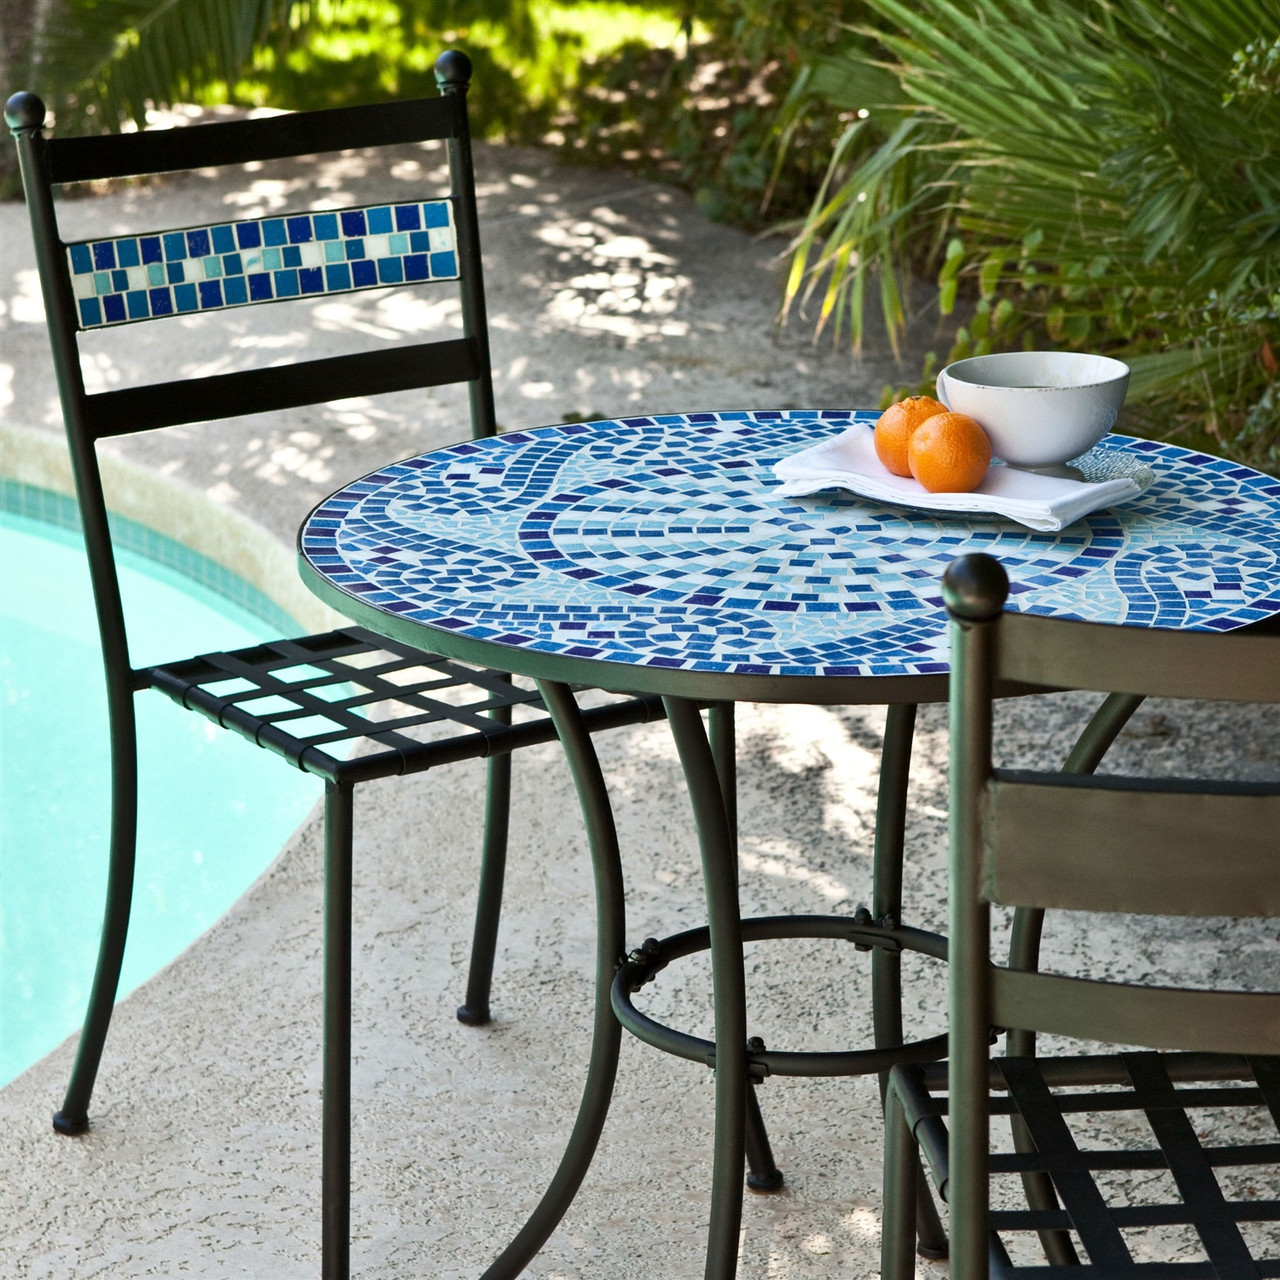 Outdoor 3 Piece Aqua Blue Mosaic Tiles Patio Furniture